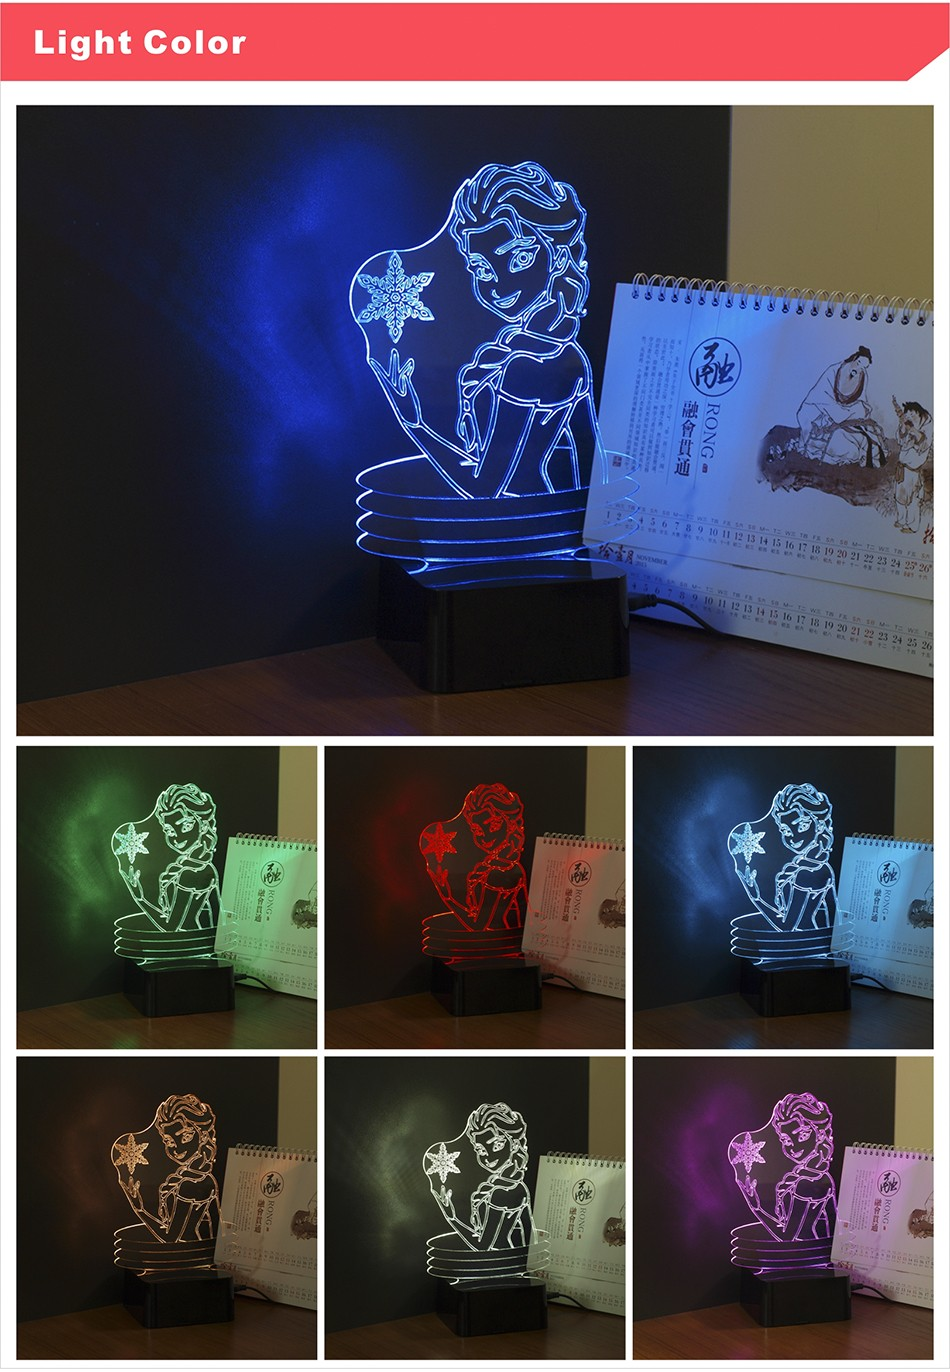 CNHIDEE 3d Visual Elsa Anna Lamp LED Touch Night Lights as Home Decor Creative Gifts for Friends Children Kids (3)